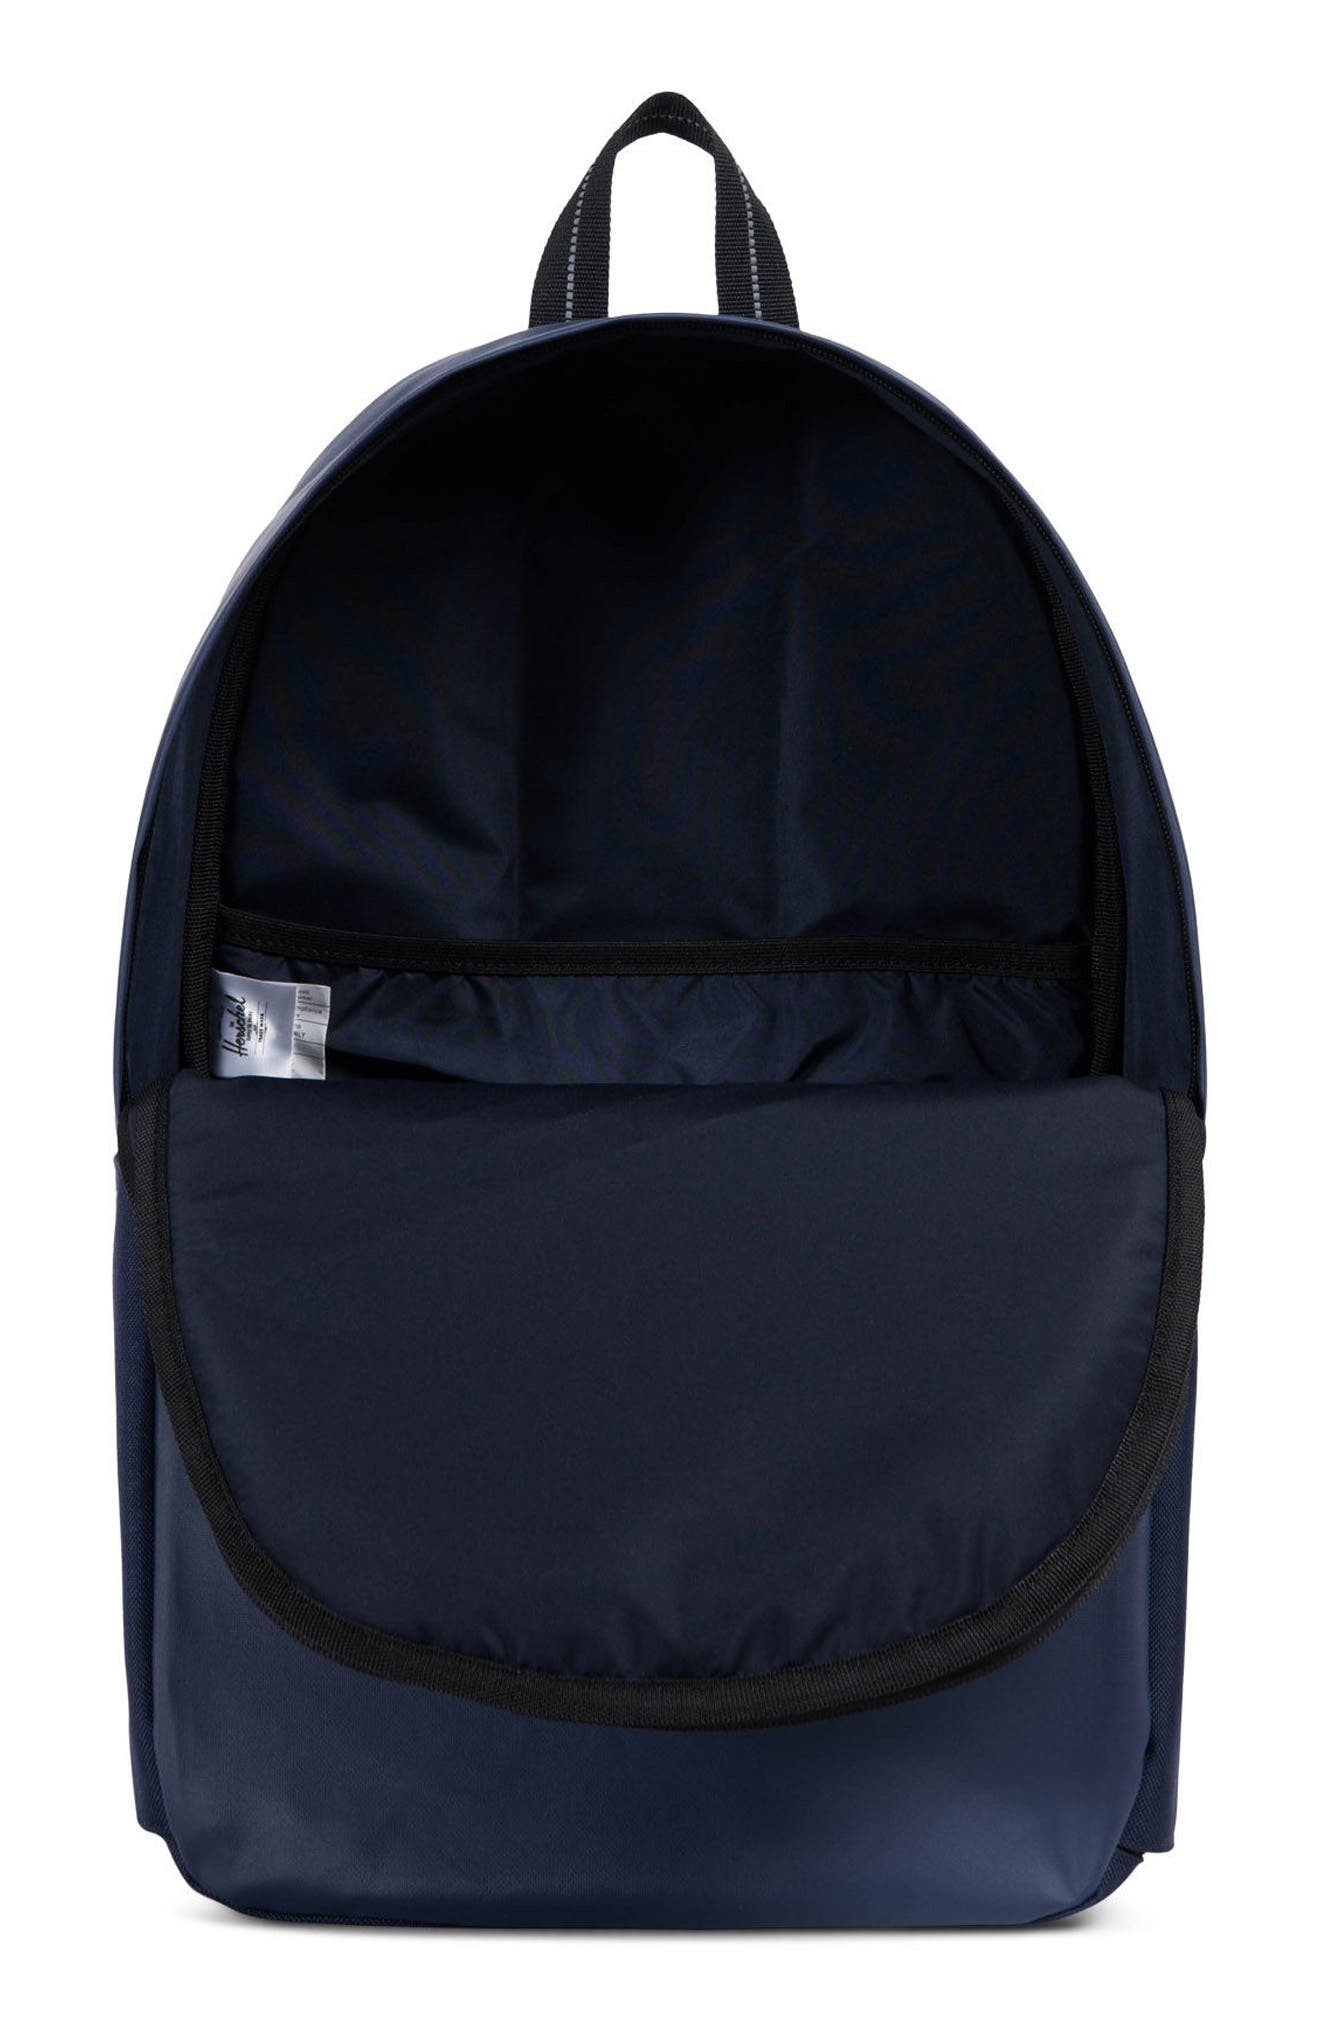 Parker Studio Collection Backpack,                             Alternate thumbnail 3, color,                             Peacoat/ Black